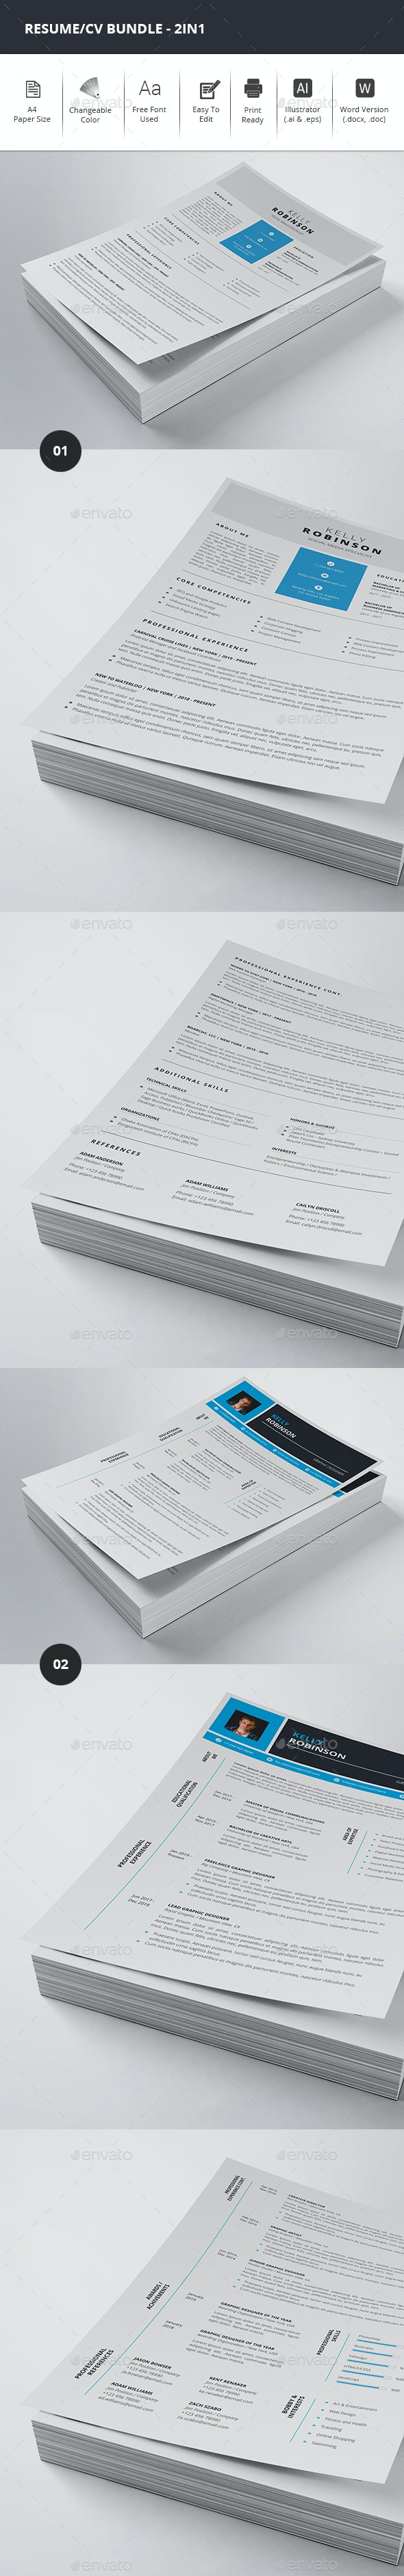 Resume/CV Bundle - 2in1 - Resumes Stationery